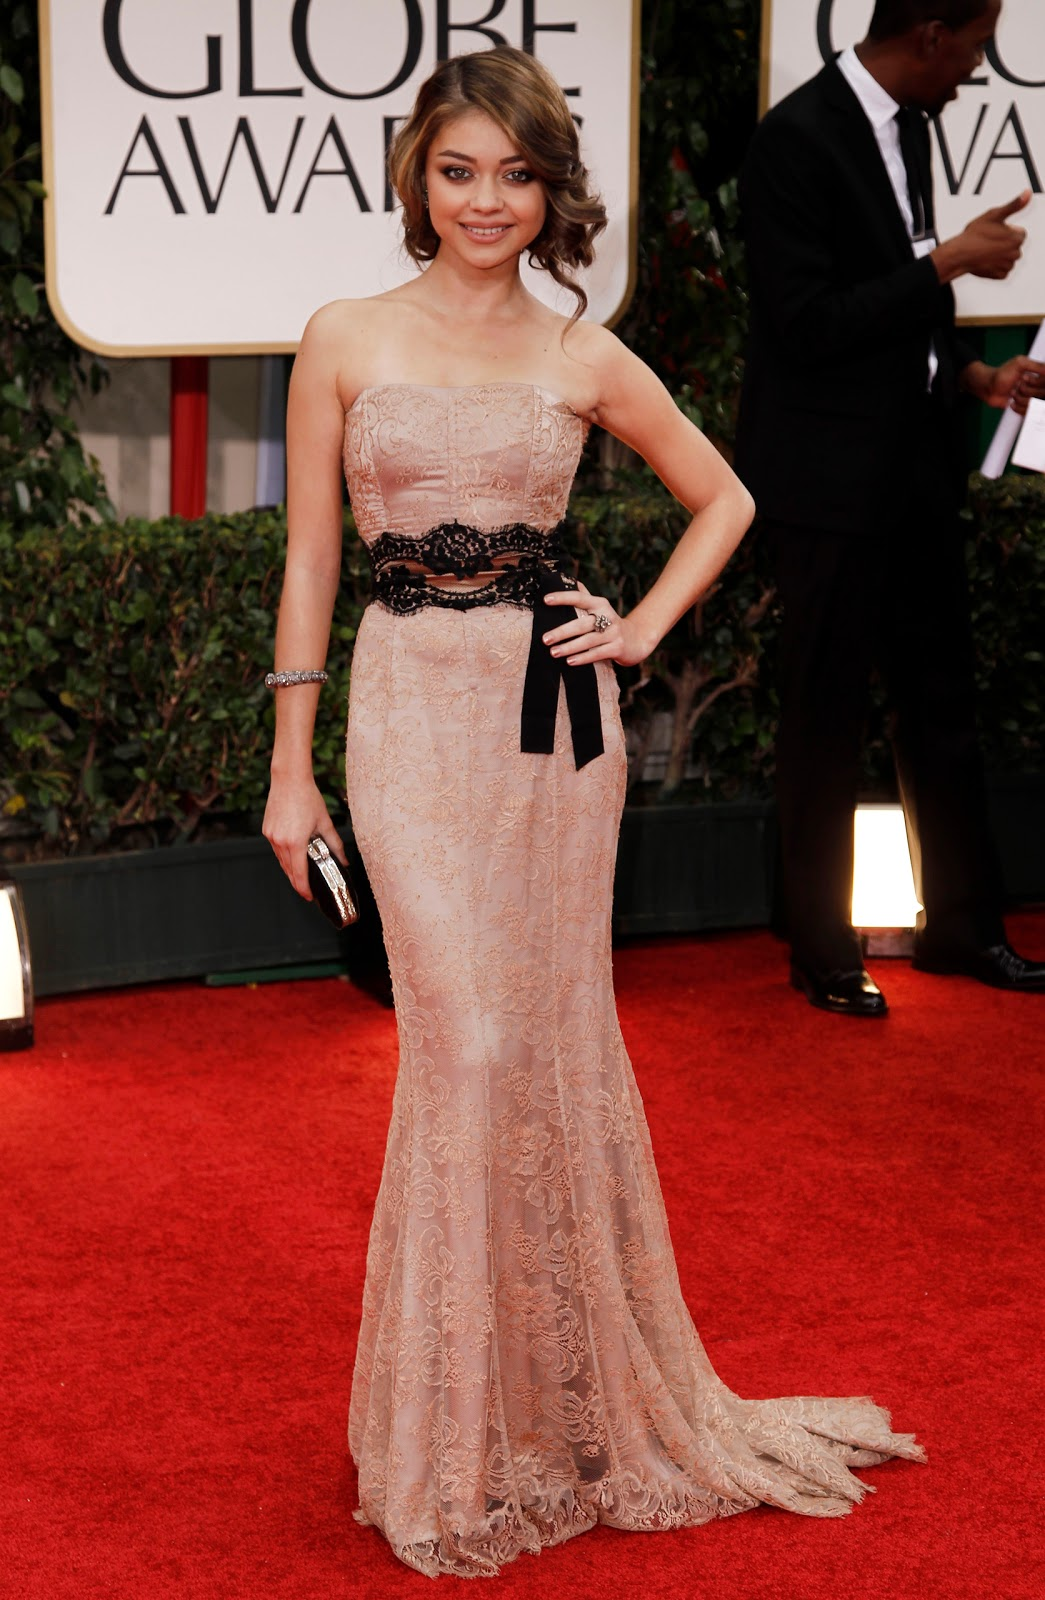 http://1.bp.blogspot.com/-TGVJD1Q2xIk/TxNkZEdvZMI/AAAAAAAABmI/_DSOC1-wq8E/s1600/CU-Sarah+Hyland+arrives+at+the+69th+Annual+Golden+Globe+Awards-02.jpg